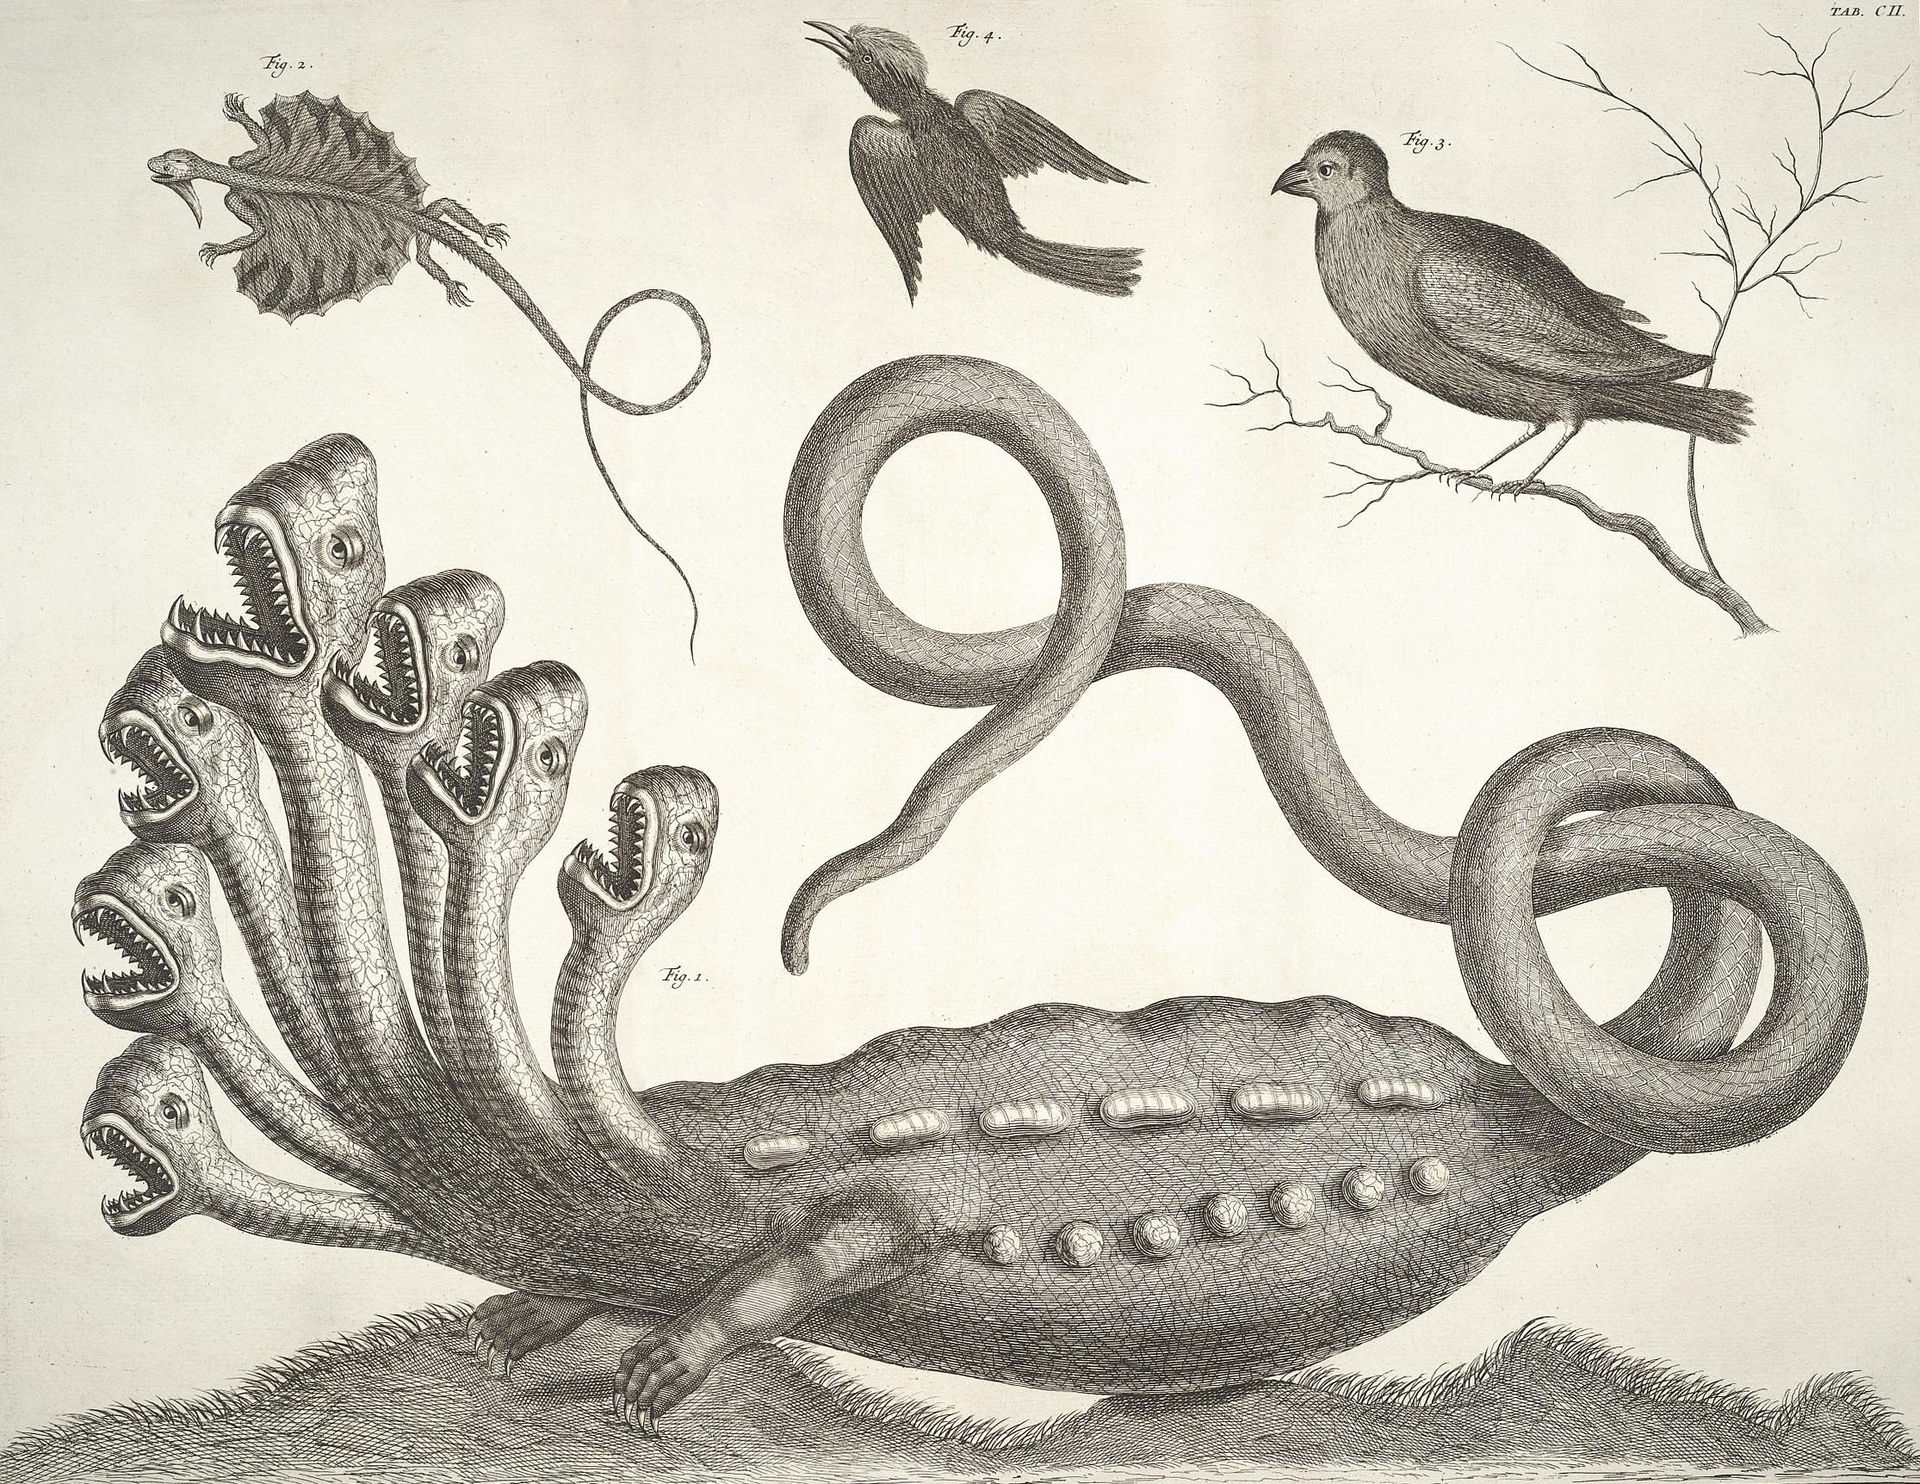 The Hamburg Hydra, from the Thesaurus (1734)